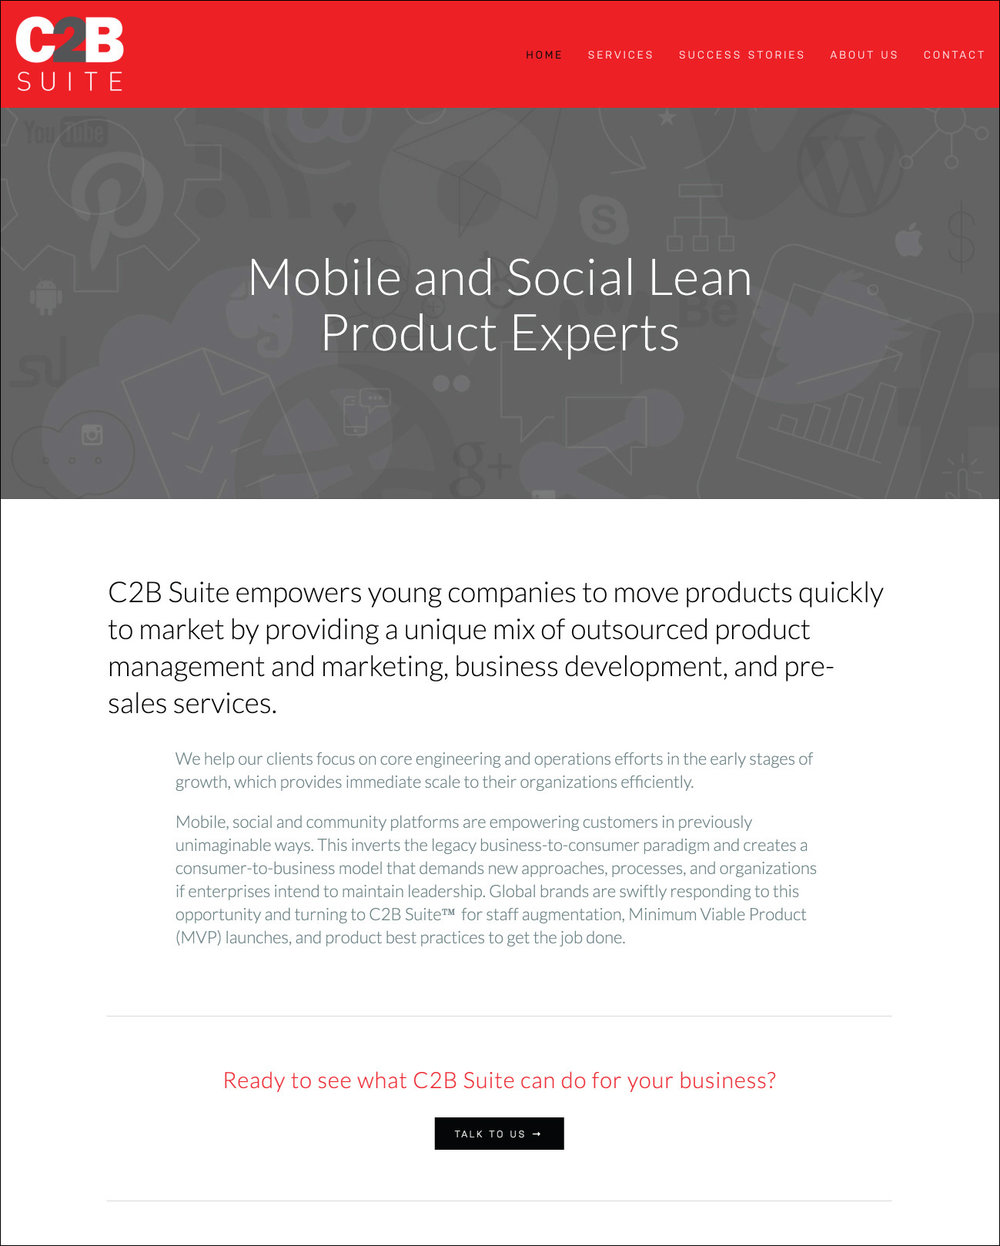 C2B Suite Website Design | DesignCode | Austin, Texas